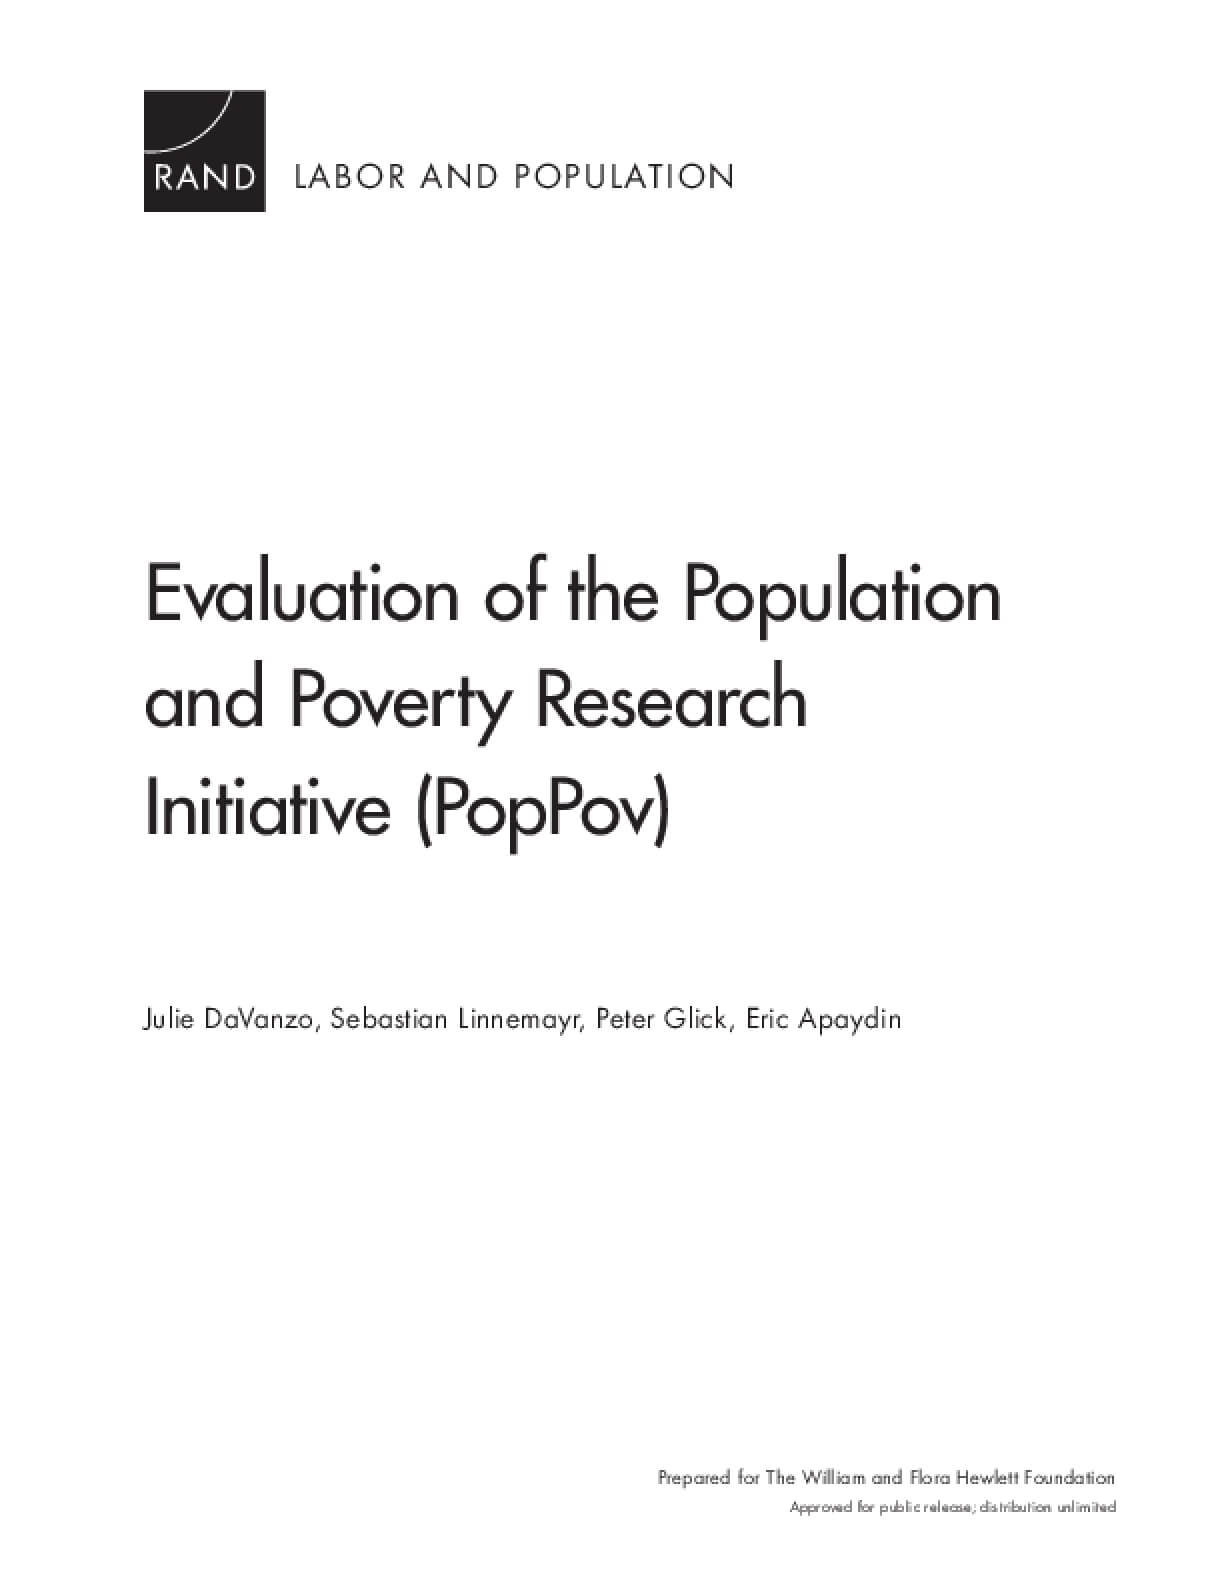 Evaluation of the Population and Poverty Research Initiative (PopPov)